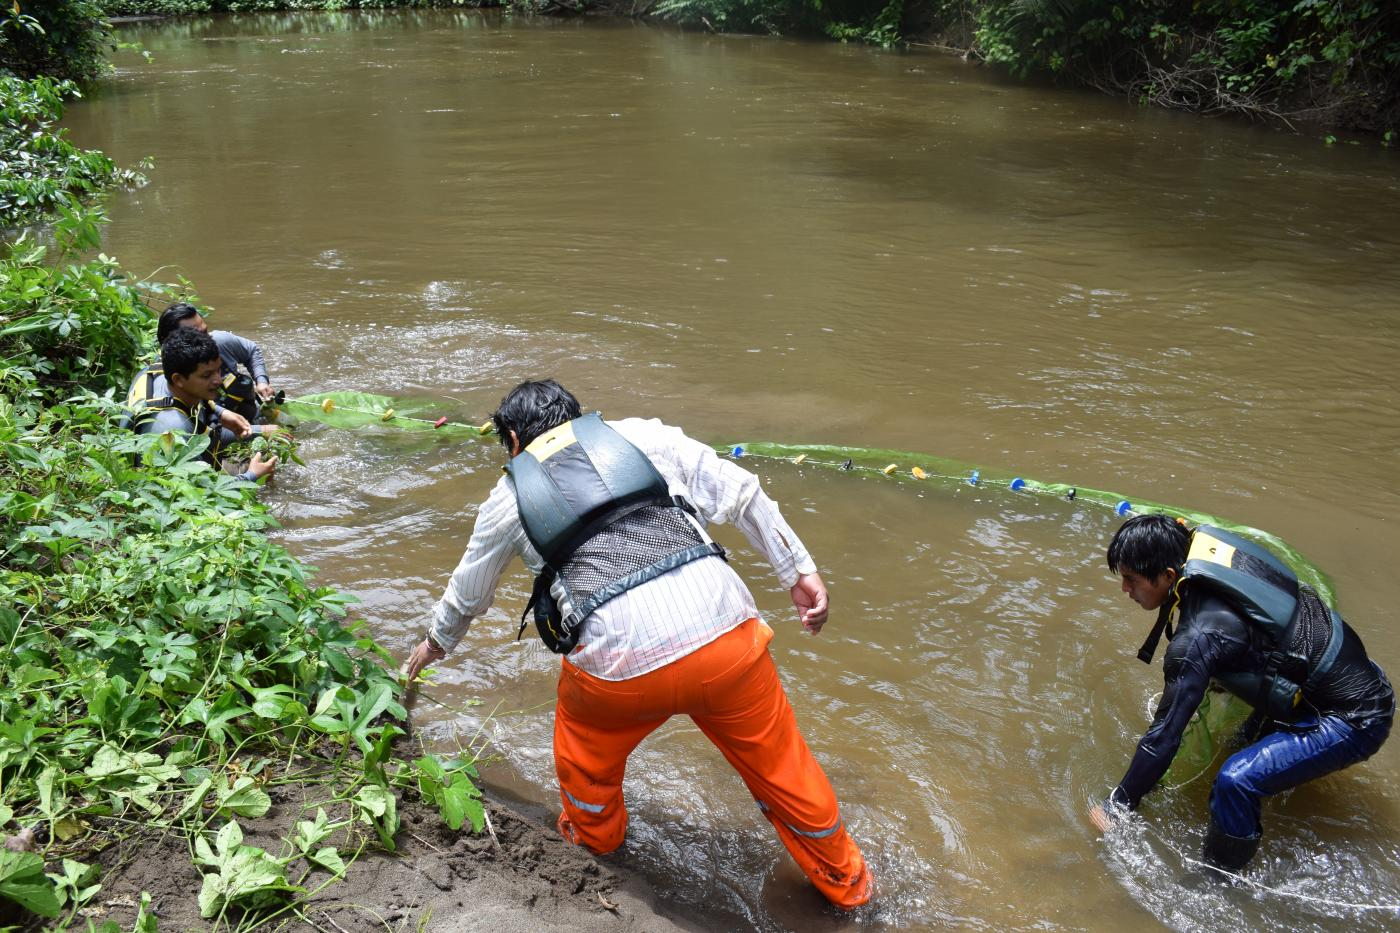 A group of researchers wade into a murky stream in the Peruvian Amazon and use a beach seine to catch fish